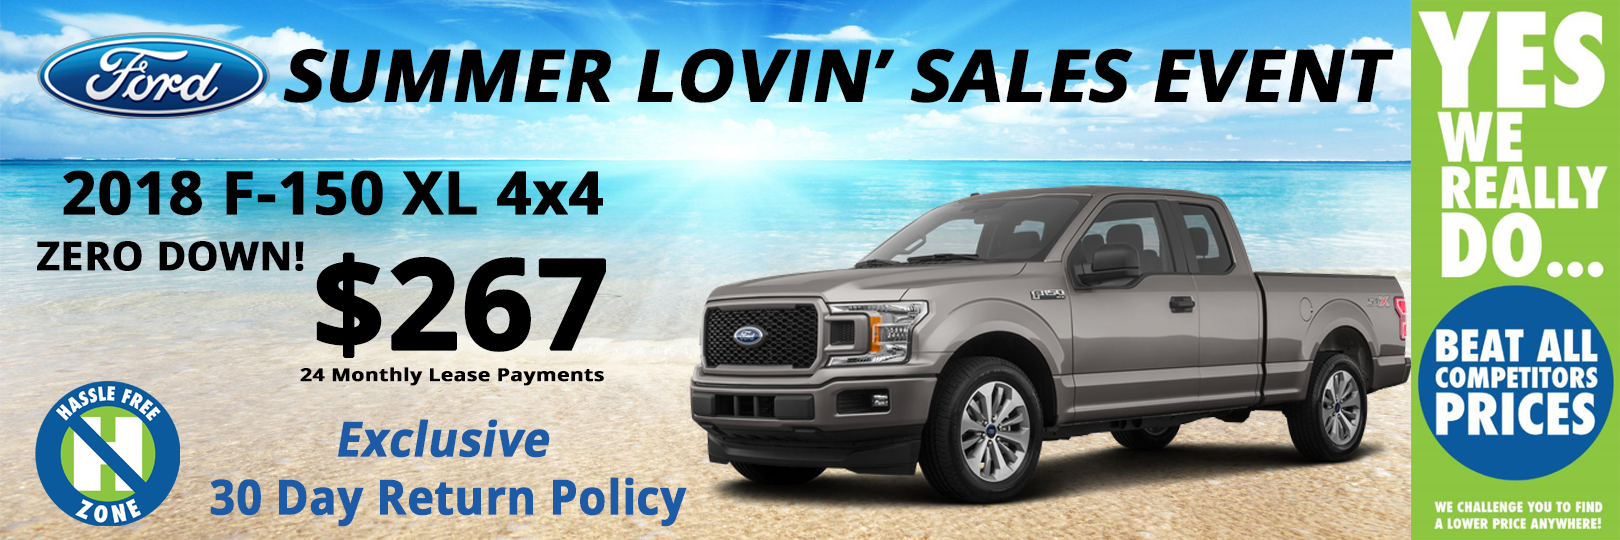 Ford dealership in lansing michigan courtesy ford ford f 150 lease special malvernweather Images